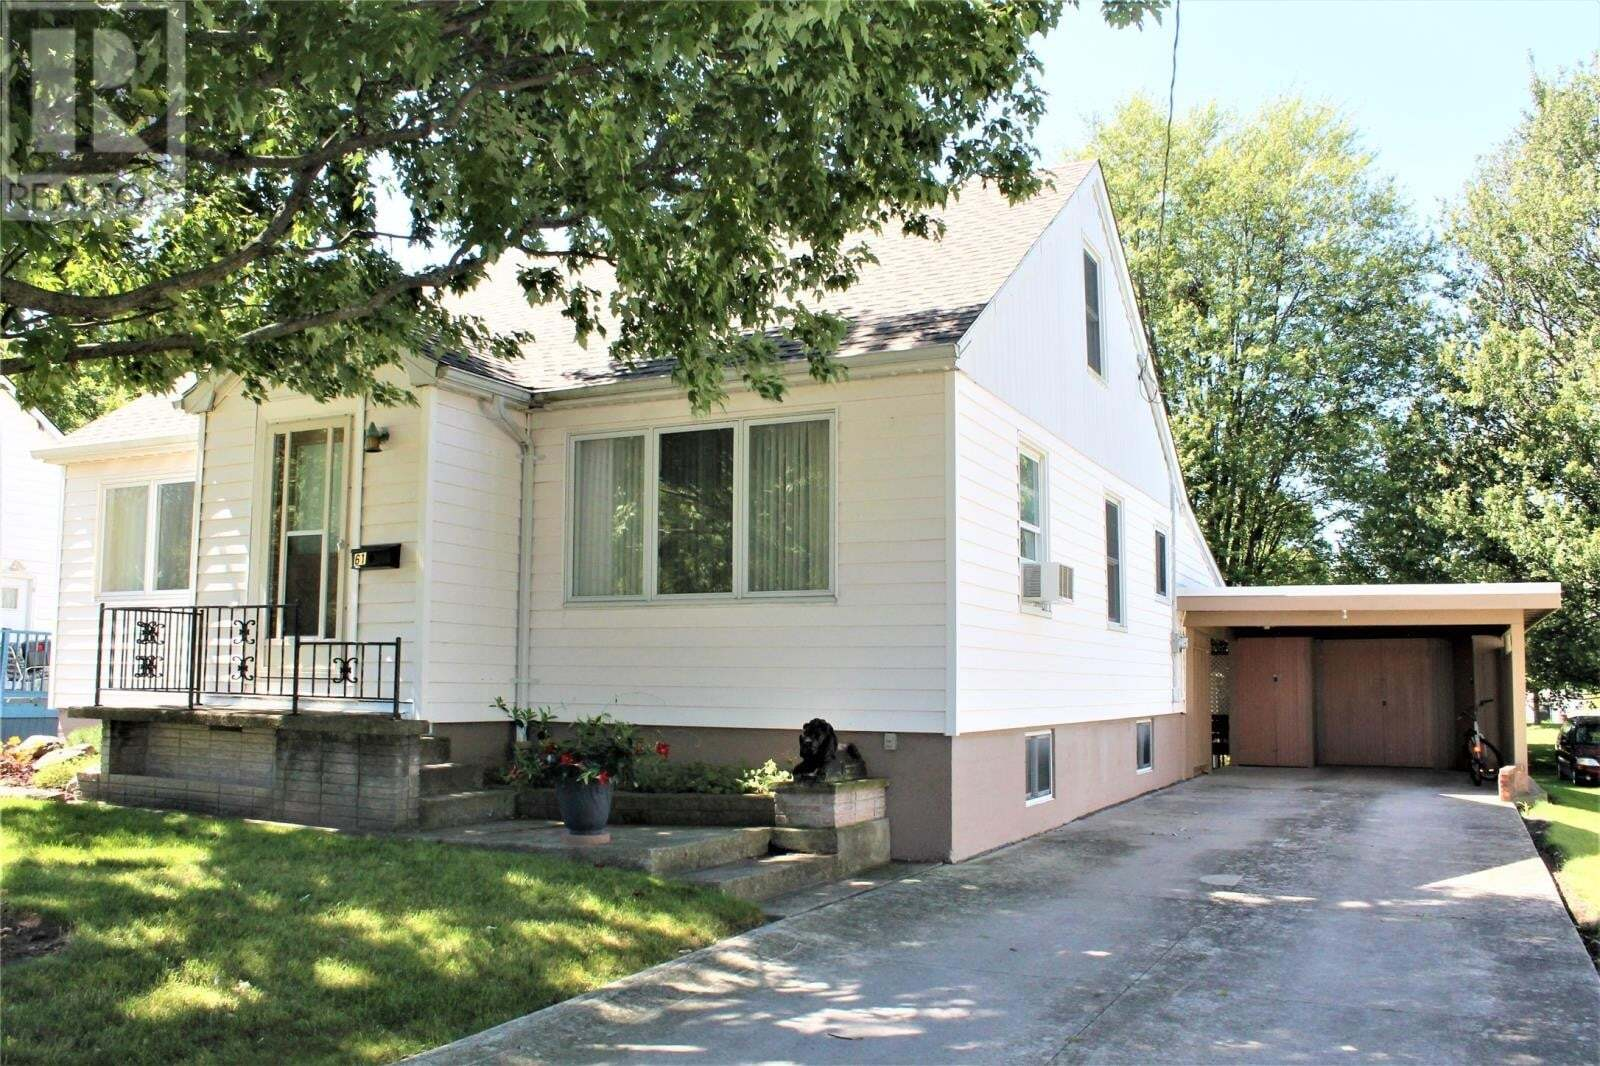 House for sale at 61 Grand Ave Wallaceburg Ontario - MLS: 20009190